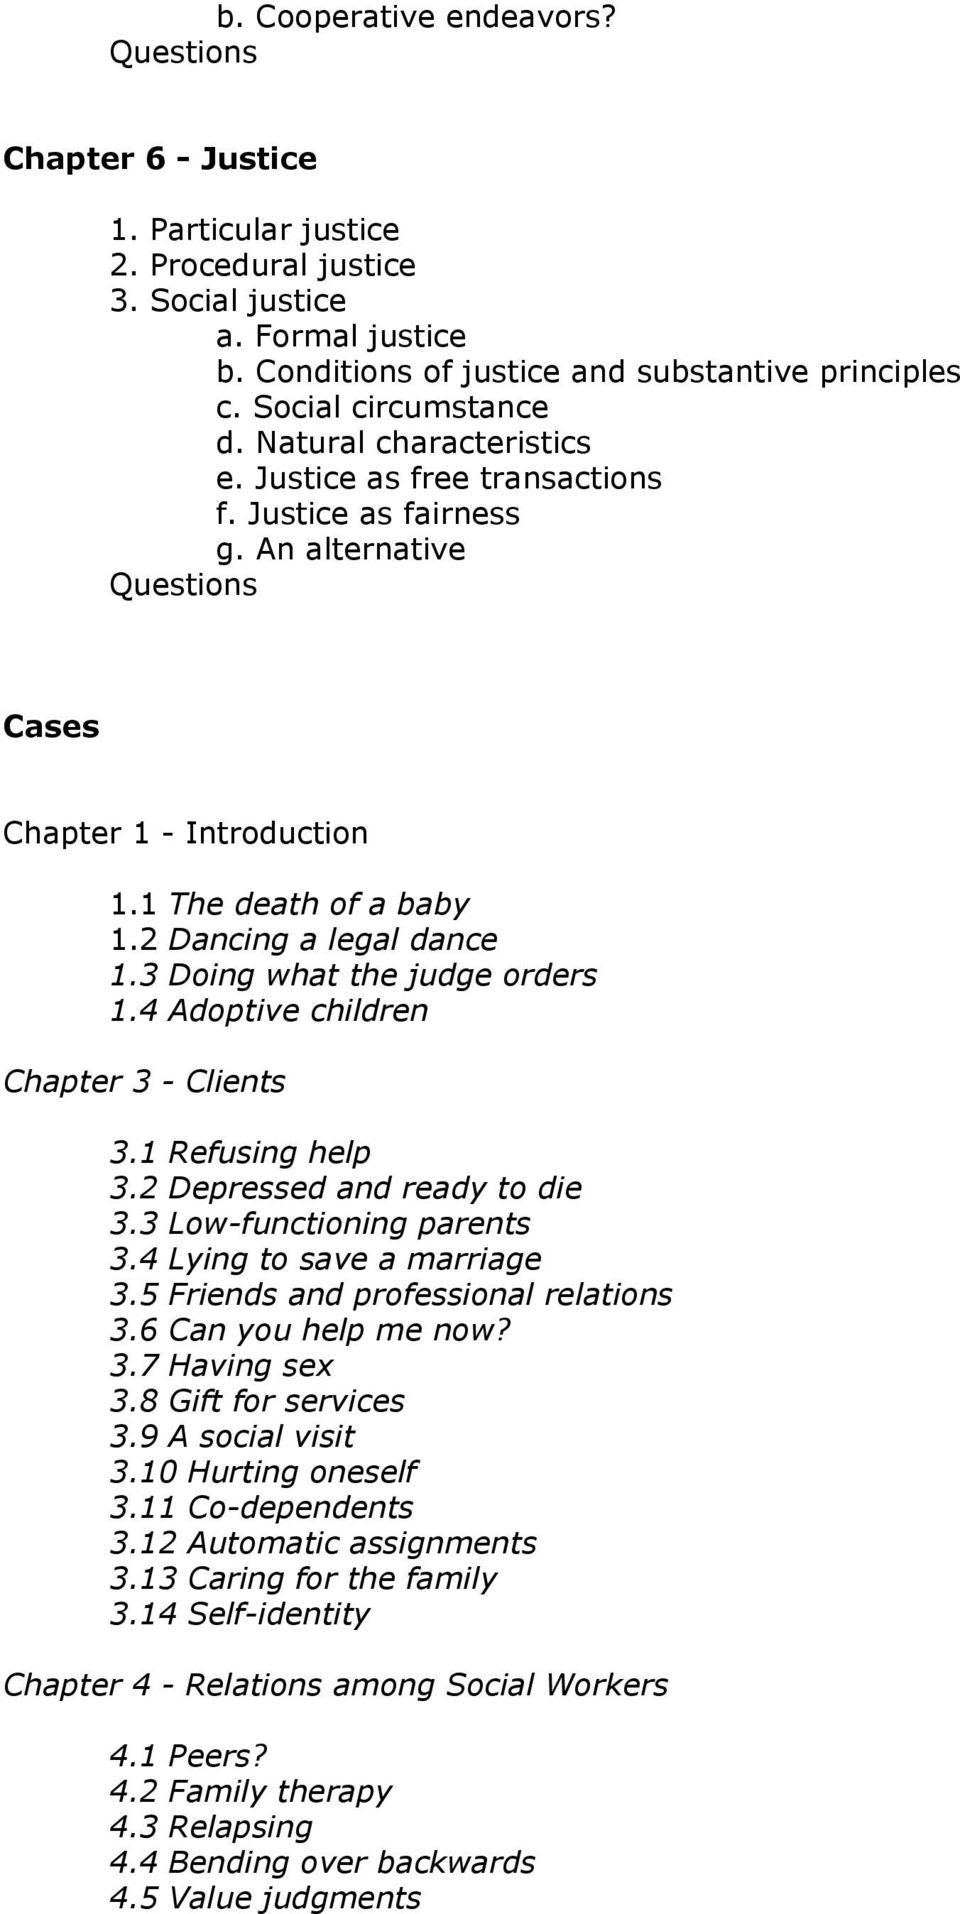 2 Dancing a legal dance 1.3 Doing what the judge orders 1.4 Adoptive children Chapter 3 - Clients 3.1 Refusing help 3.2 Depressed and ready to die 3.3 Low-functioning parents 3.